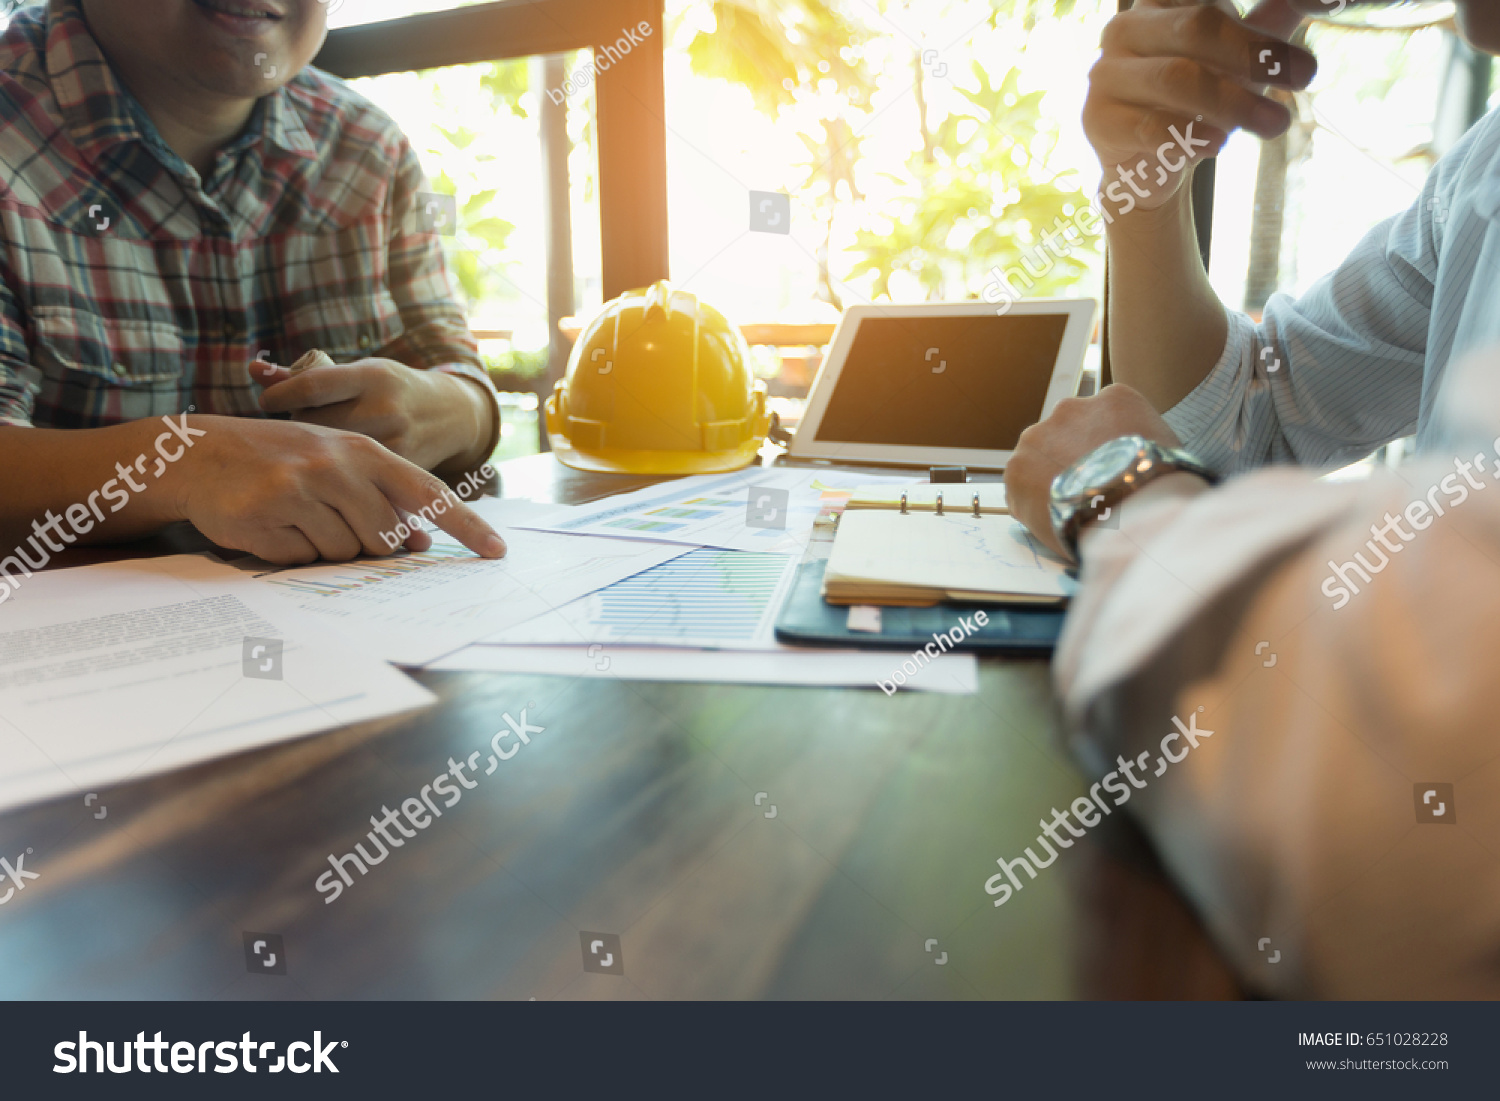 Businessmen are meeting with contractors about business plans. #651028228